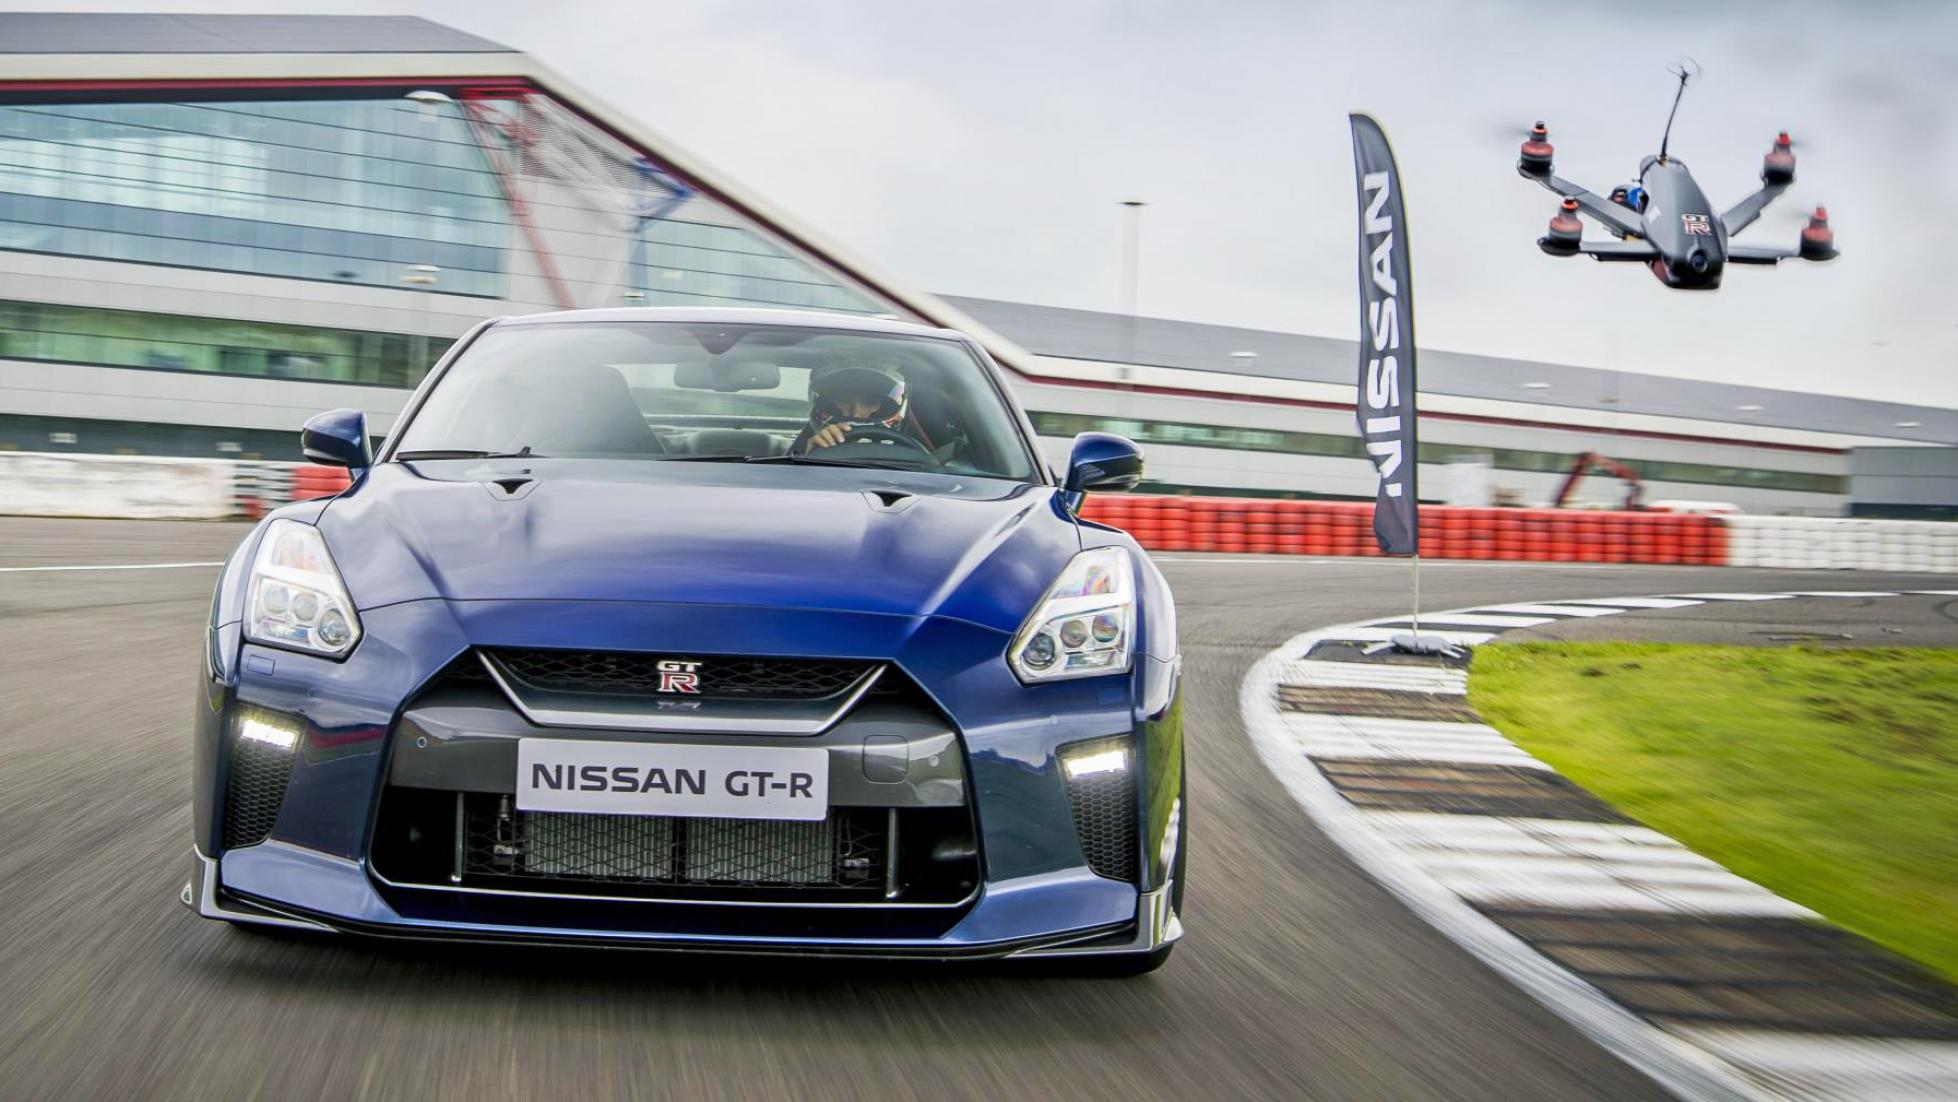 nissan sportscar races gt-r drone capable of going 0 to 60 mph in